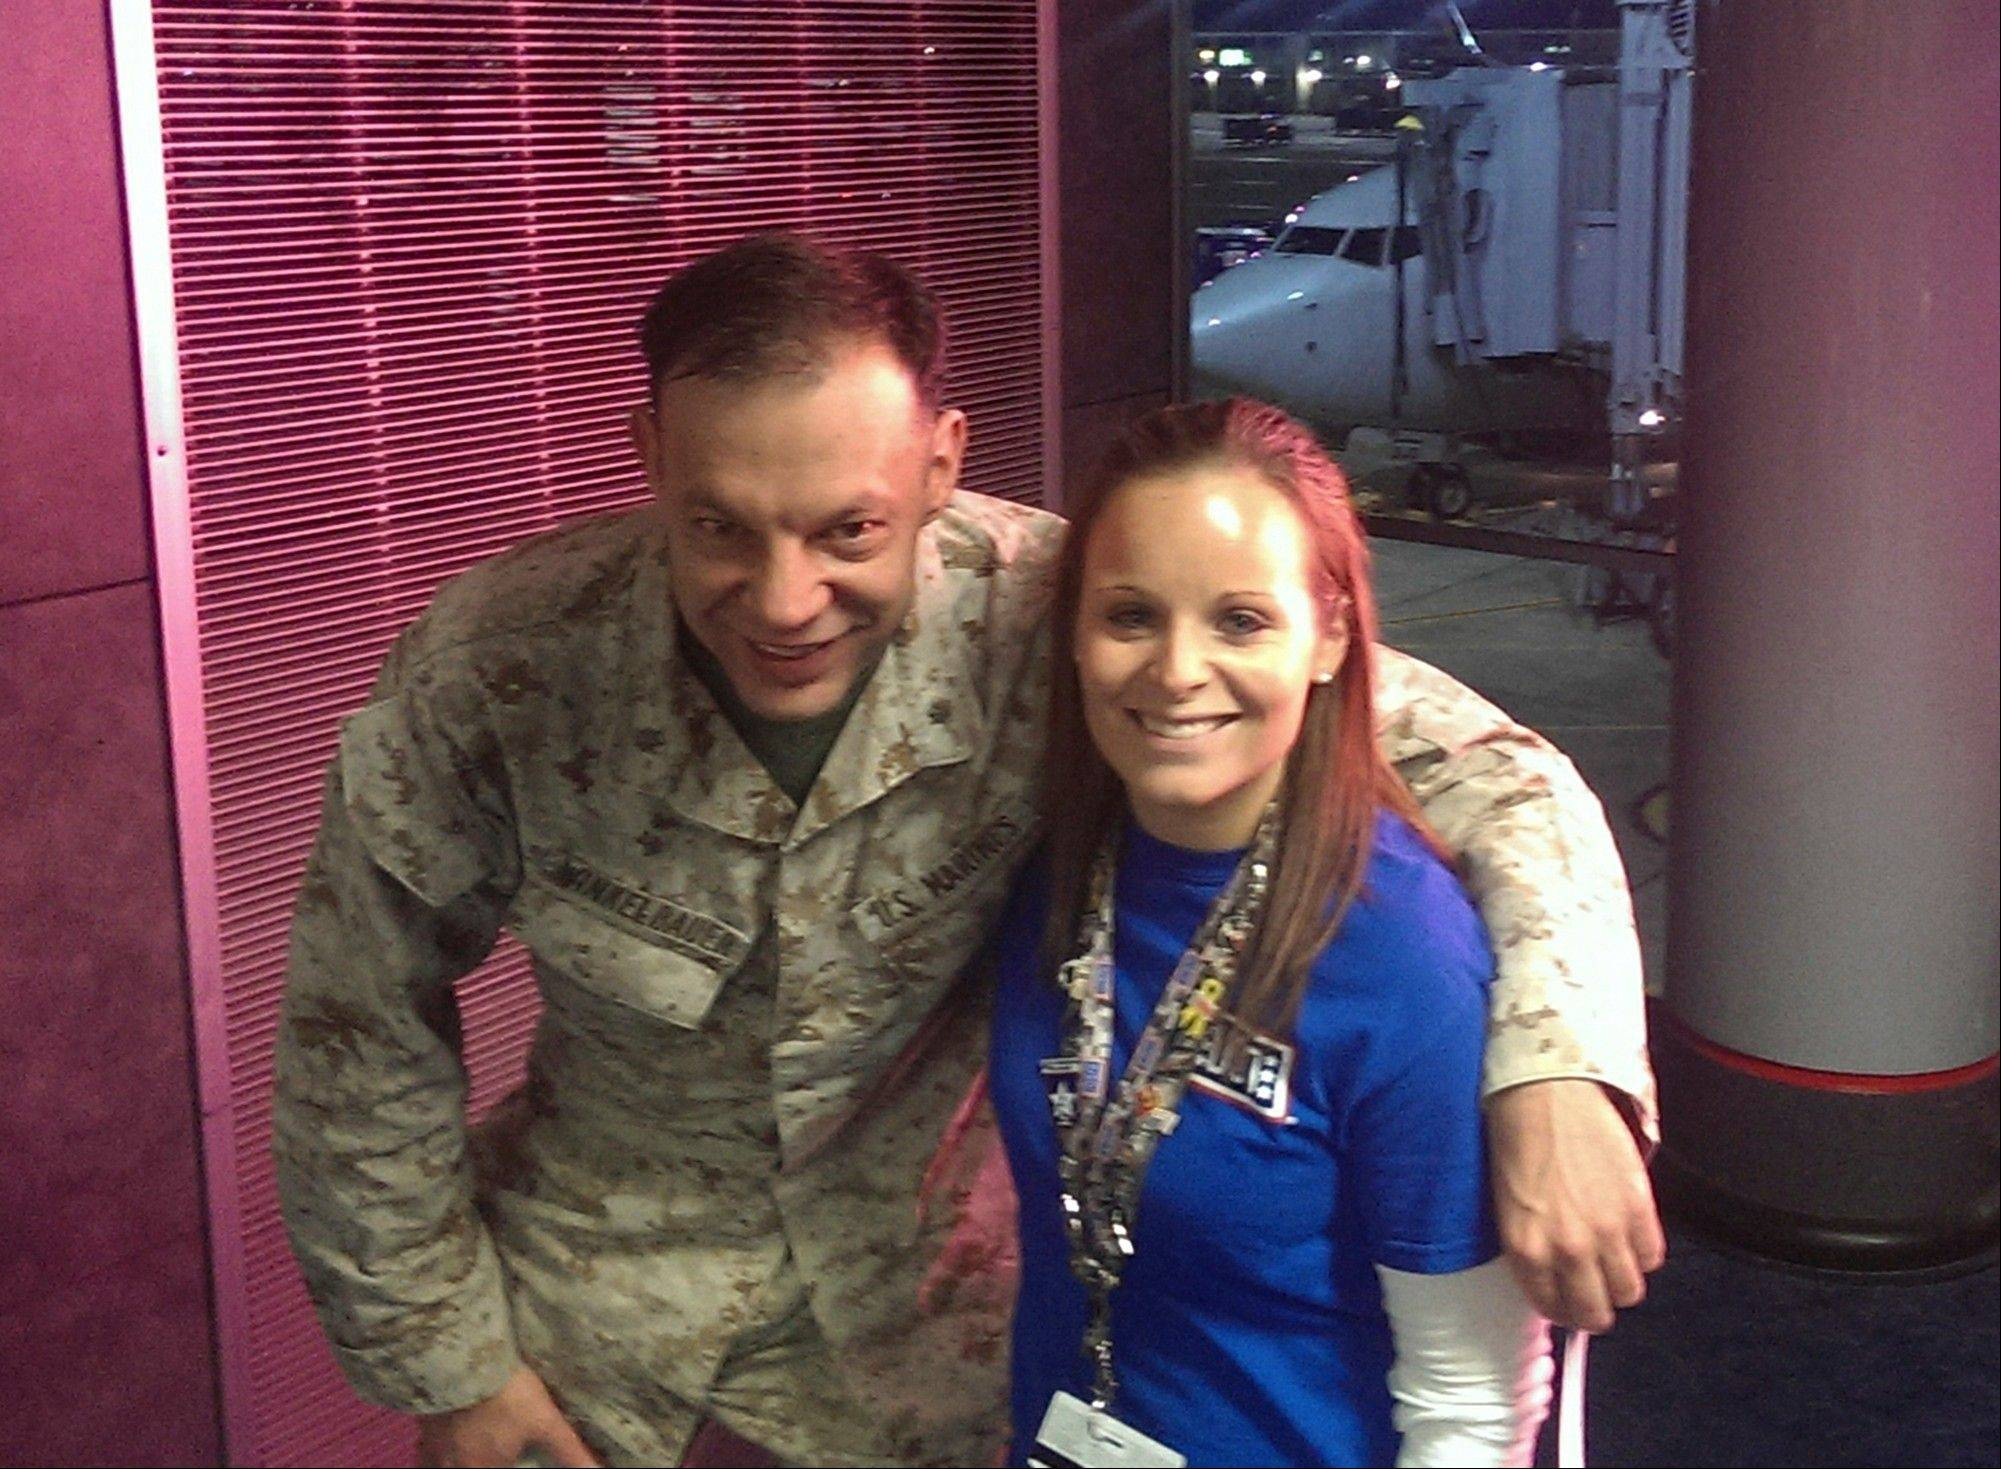 Lindsy Wadas, director of the USO Center at O'Hare International Airport with U.S. Marine Maj. Matthew Winkelbauer, left, after he and 12 other Marines arrived in Chicago before the final leg of their trip home to San Diego.